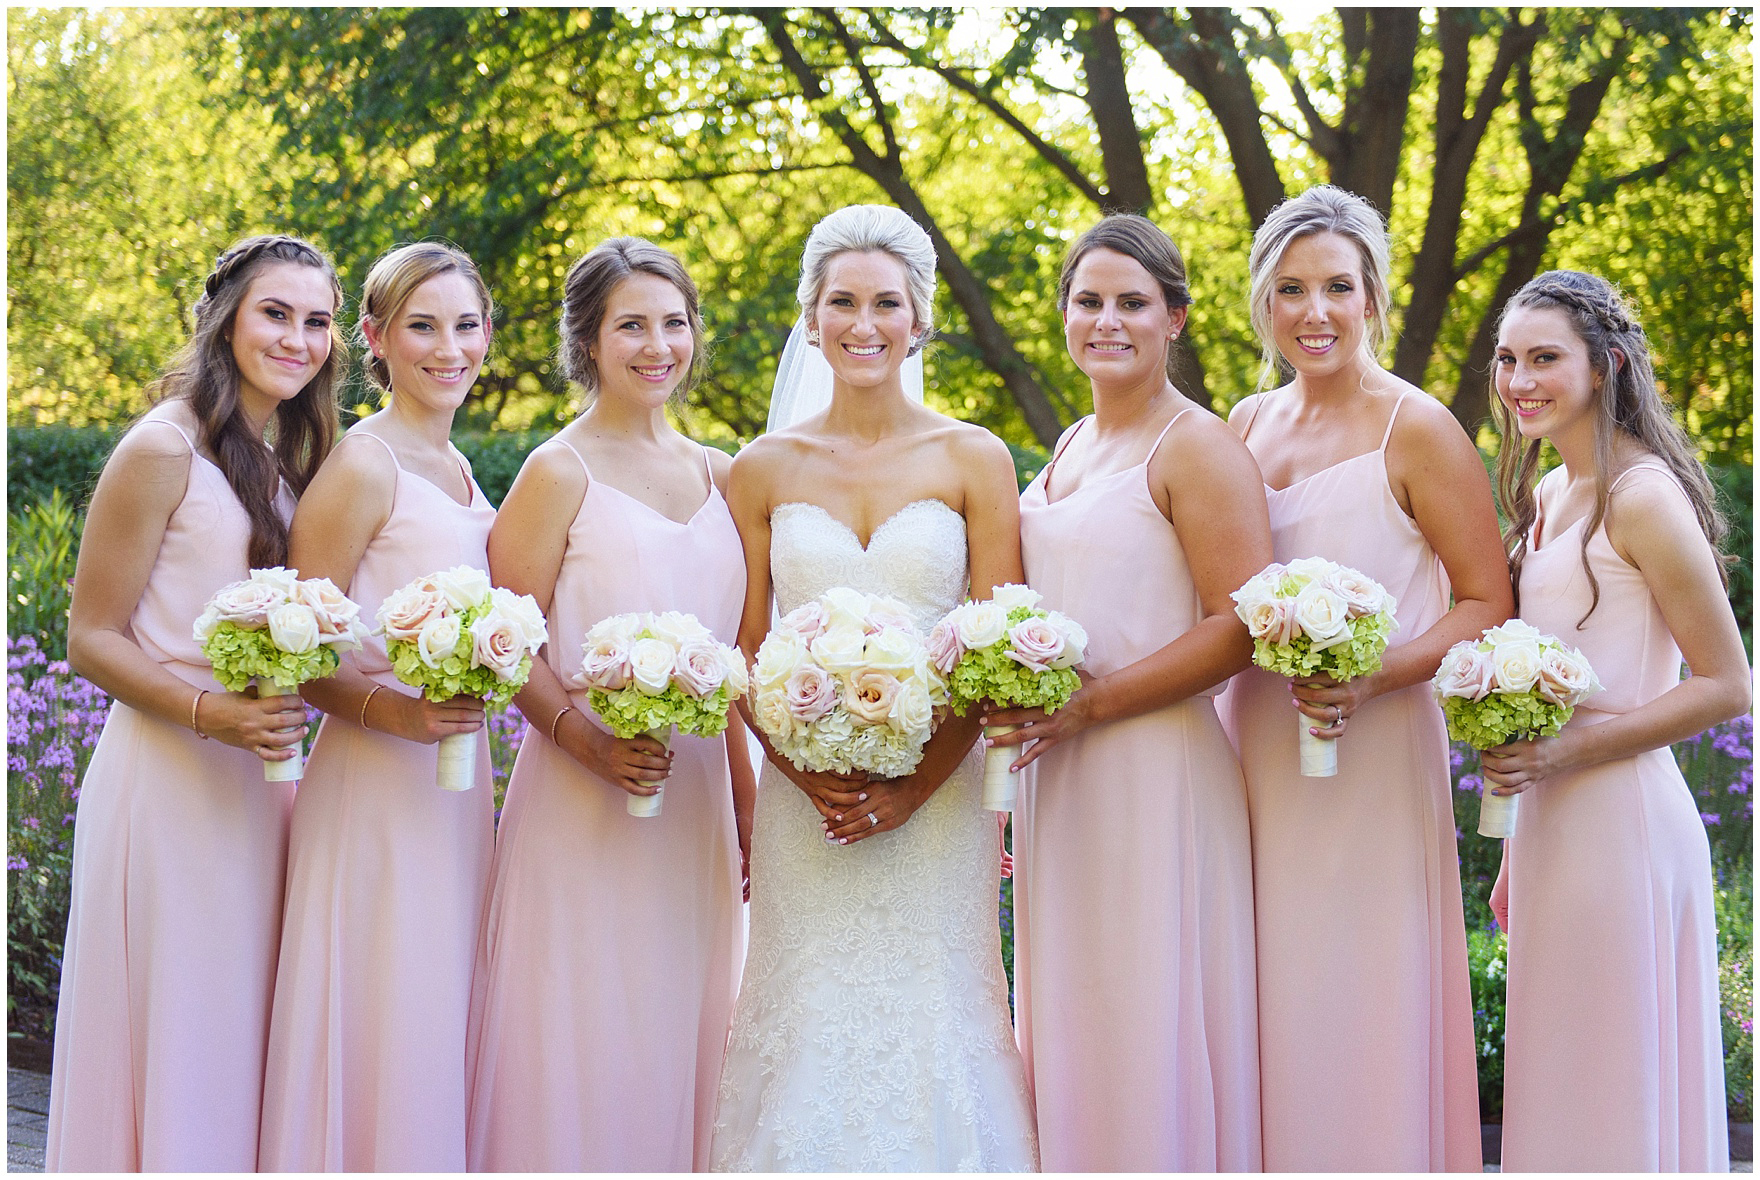 The bridesmaids pose for portraits at Cantigny Park for a St. Josephs Downers Grove Pinstripes Oak Brook, Illinois wedding.